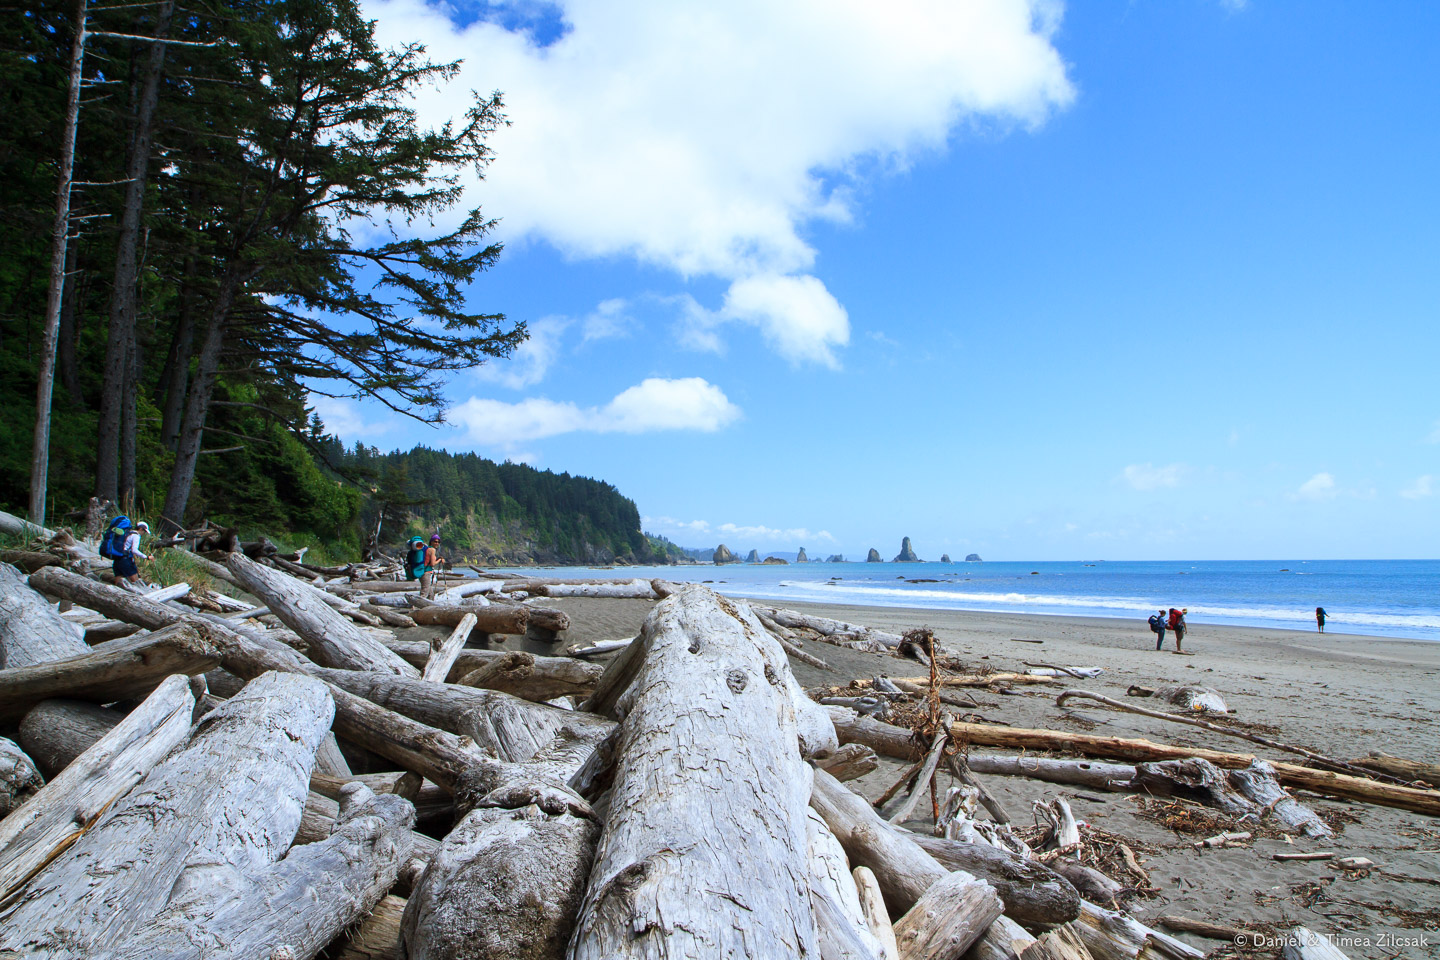 First view of the ocean at Strawberry Bay, Third Beach - Backpacking the South Coast Wilderness Trail, Olympic National Park